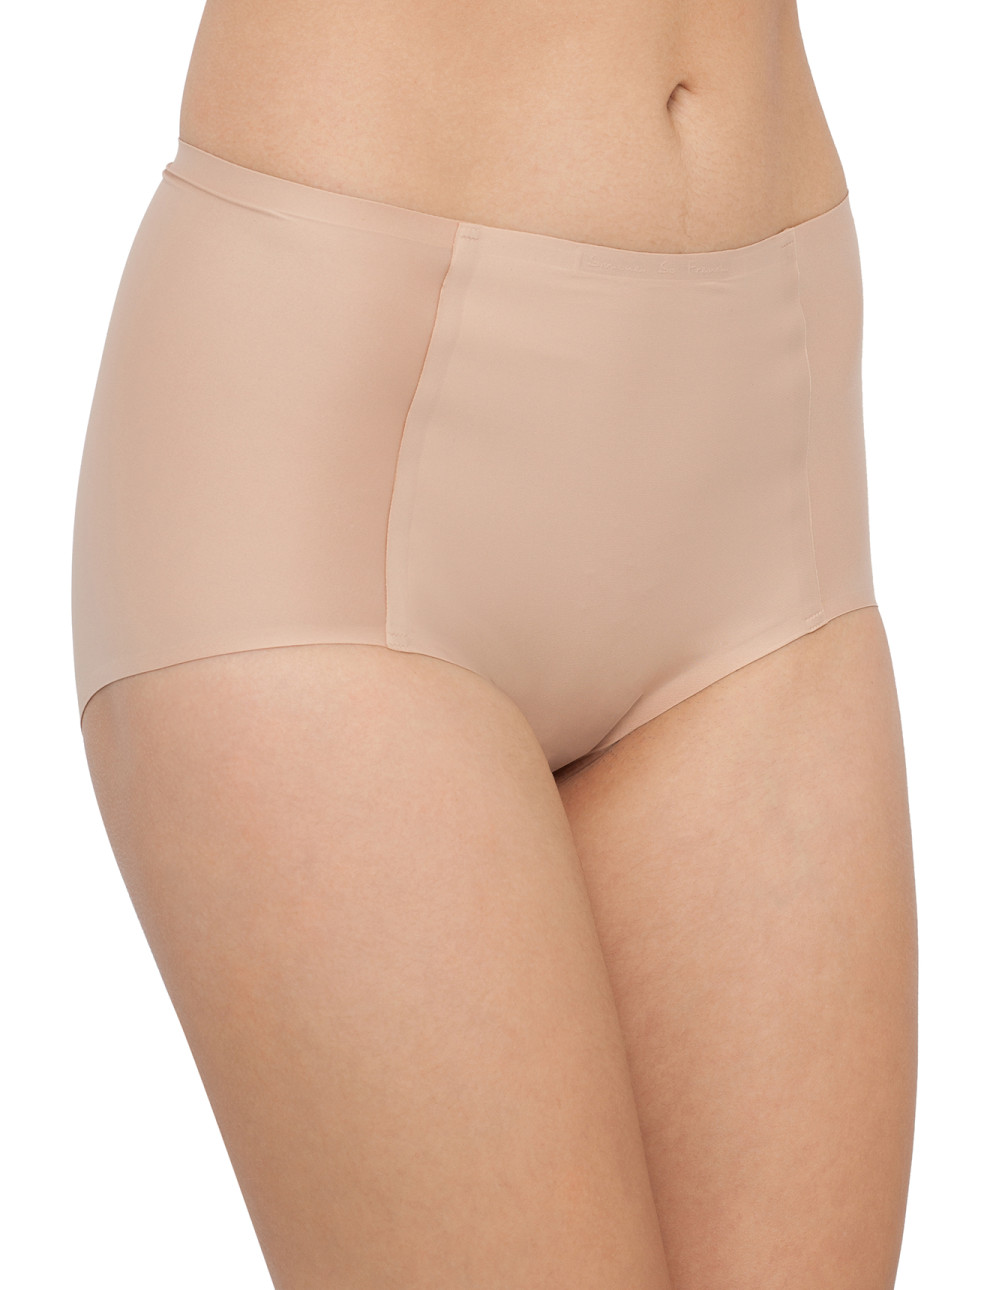 NUDE BRIEF WITH CONTROL TUMMY